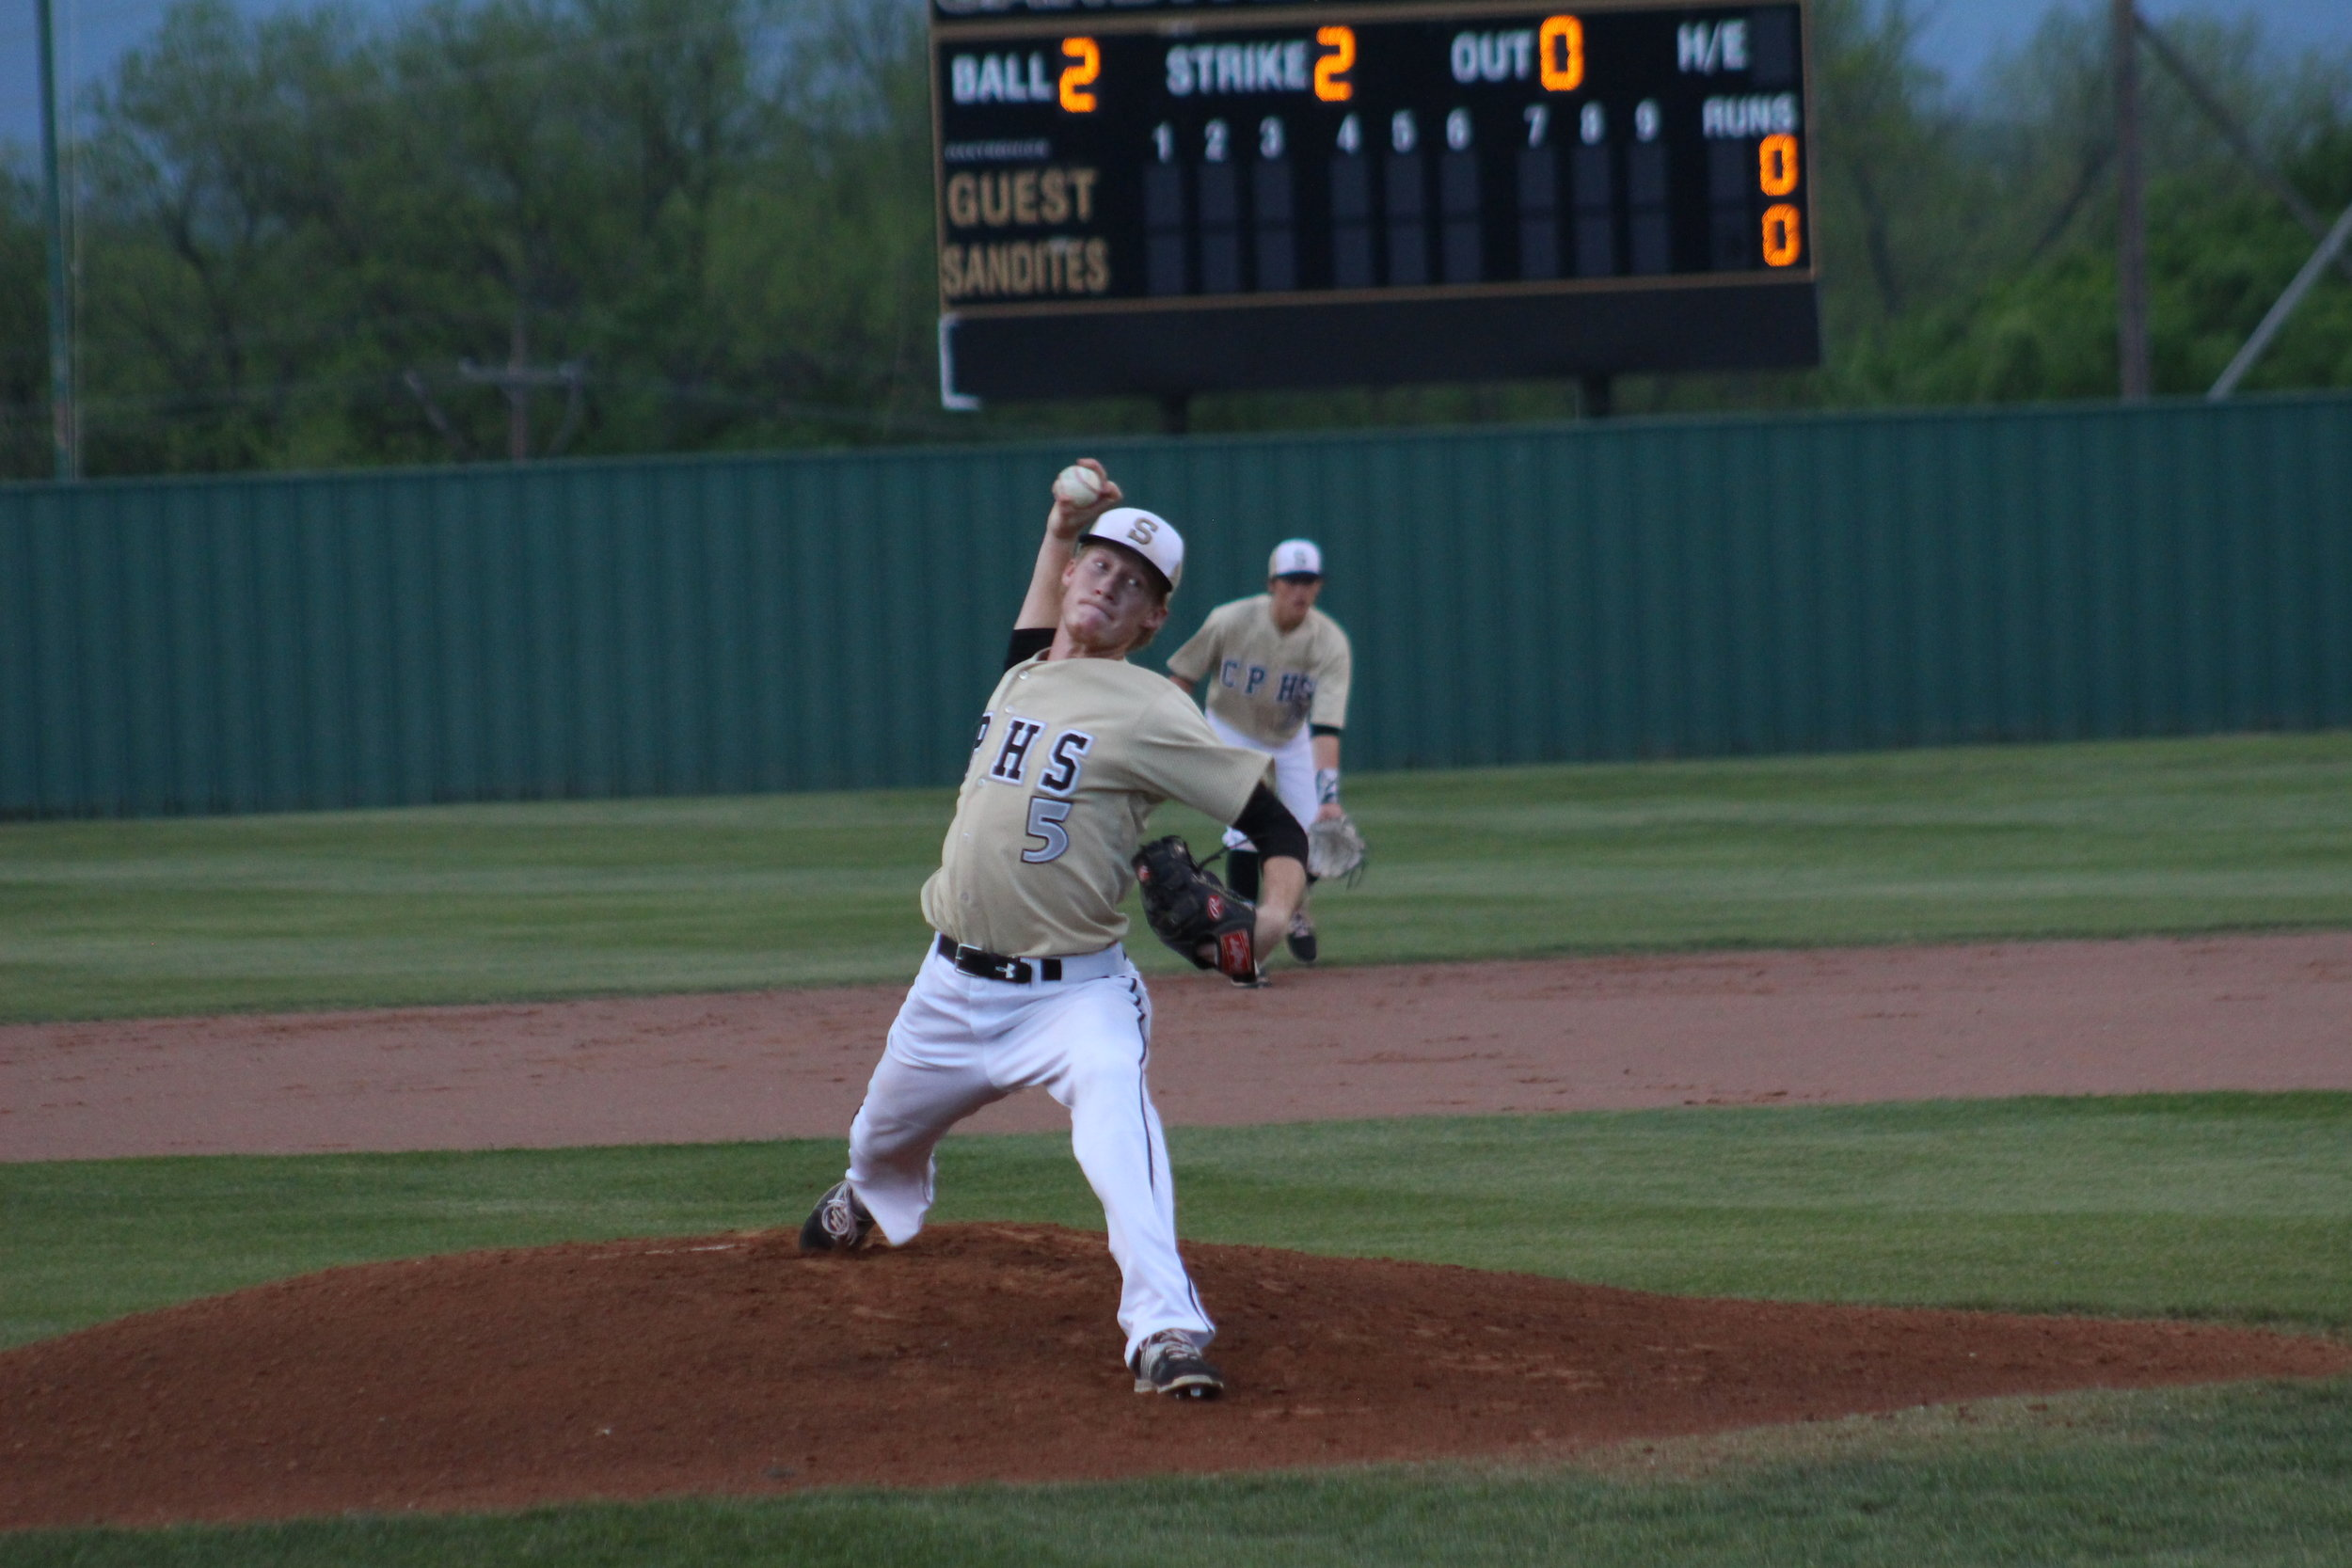 CPHS senior pitcher Hunter Greathouse pitched 10 strikeouts in a 5-0 playoff shutout of Jenks.